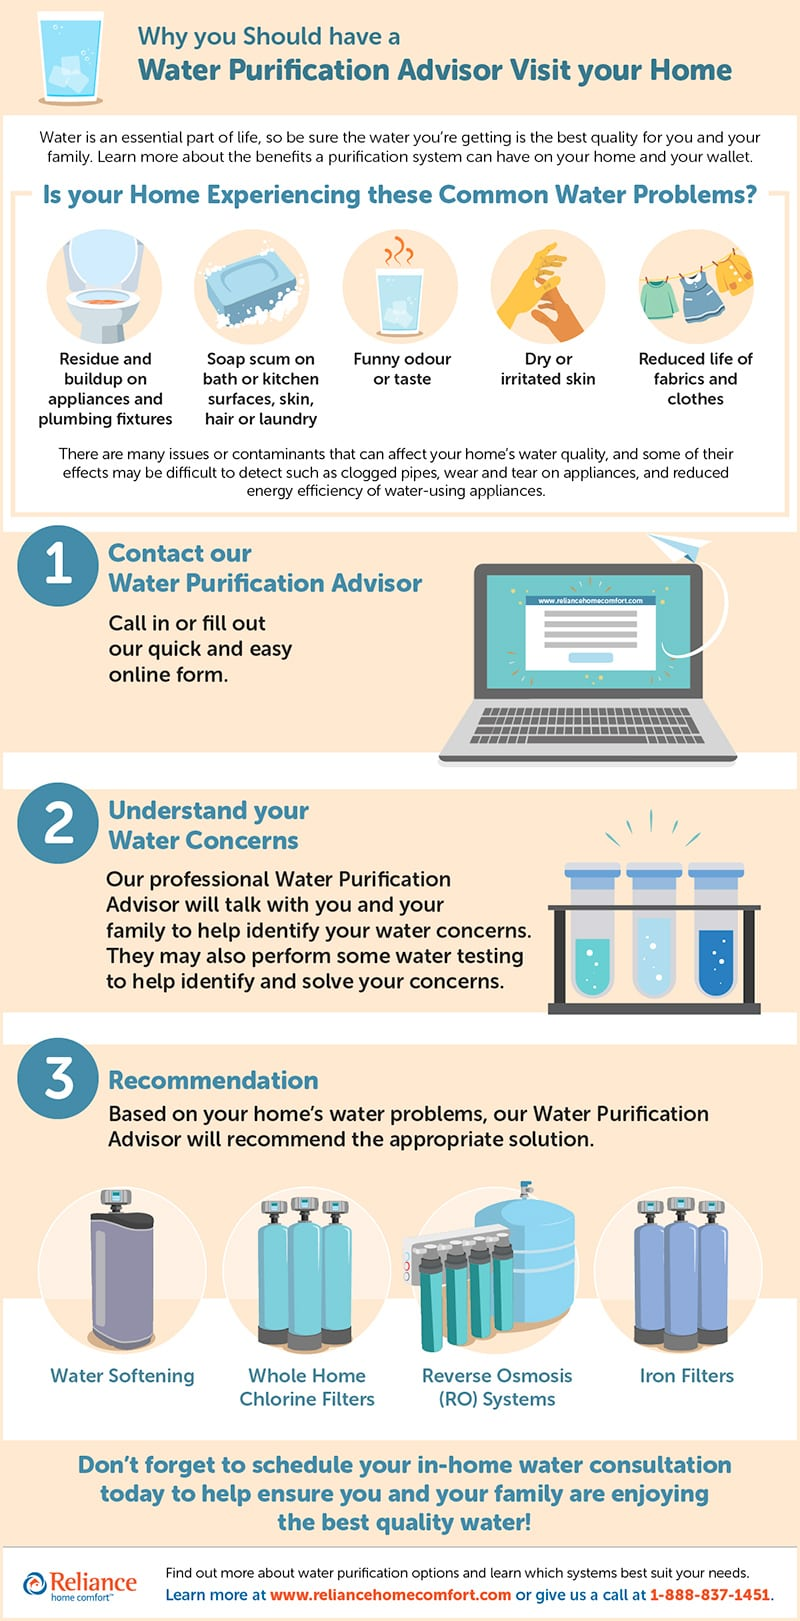 Why you Should have a Reliance™ Water Purification Advisor Visit your Home Infographic